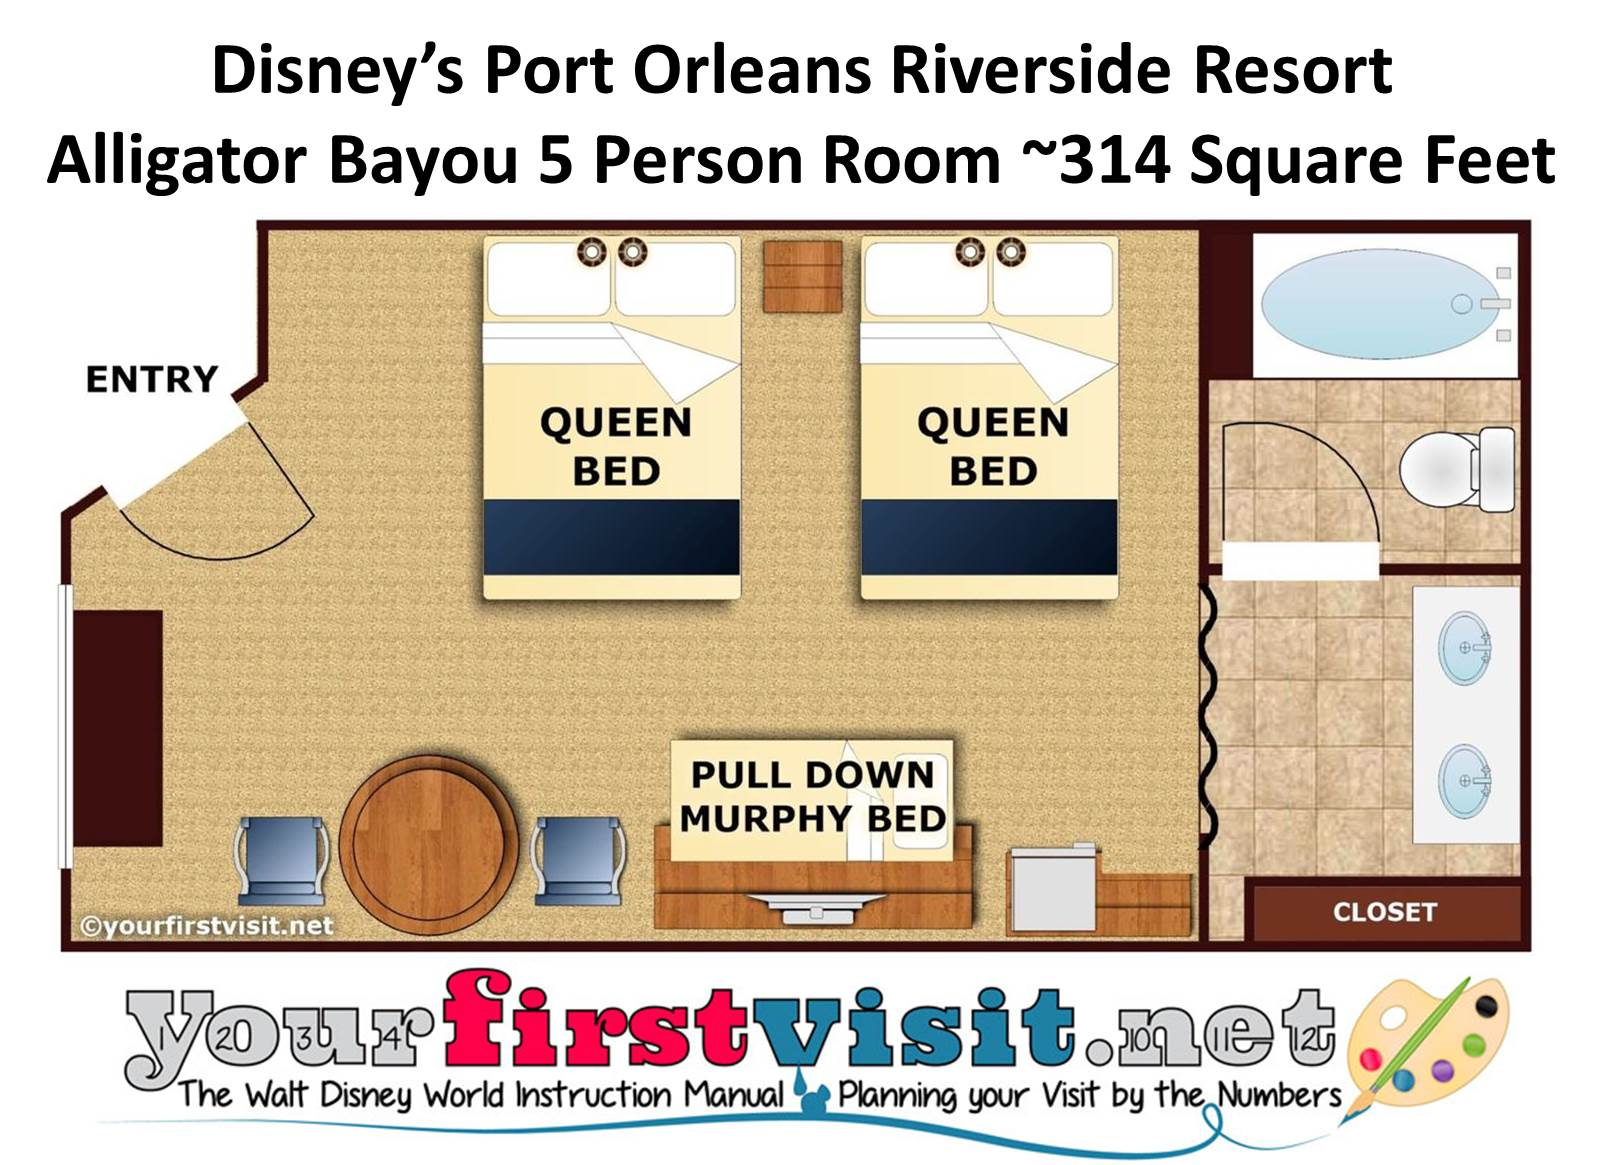 Port Orleans Riverside Alligator Bayou 5 Person Room Floor Plan from yourfirstvisit.net